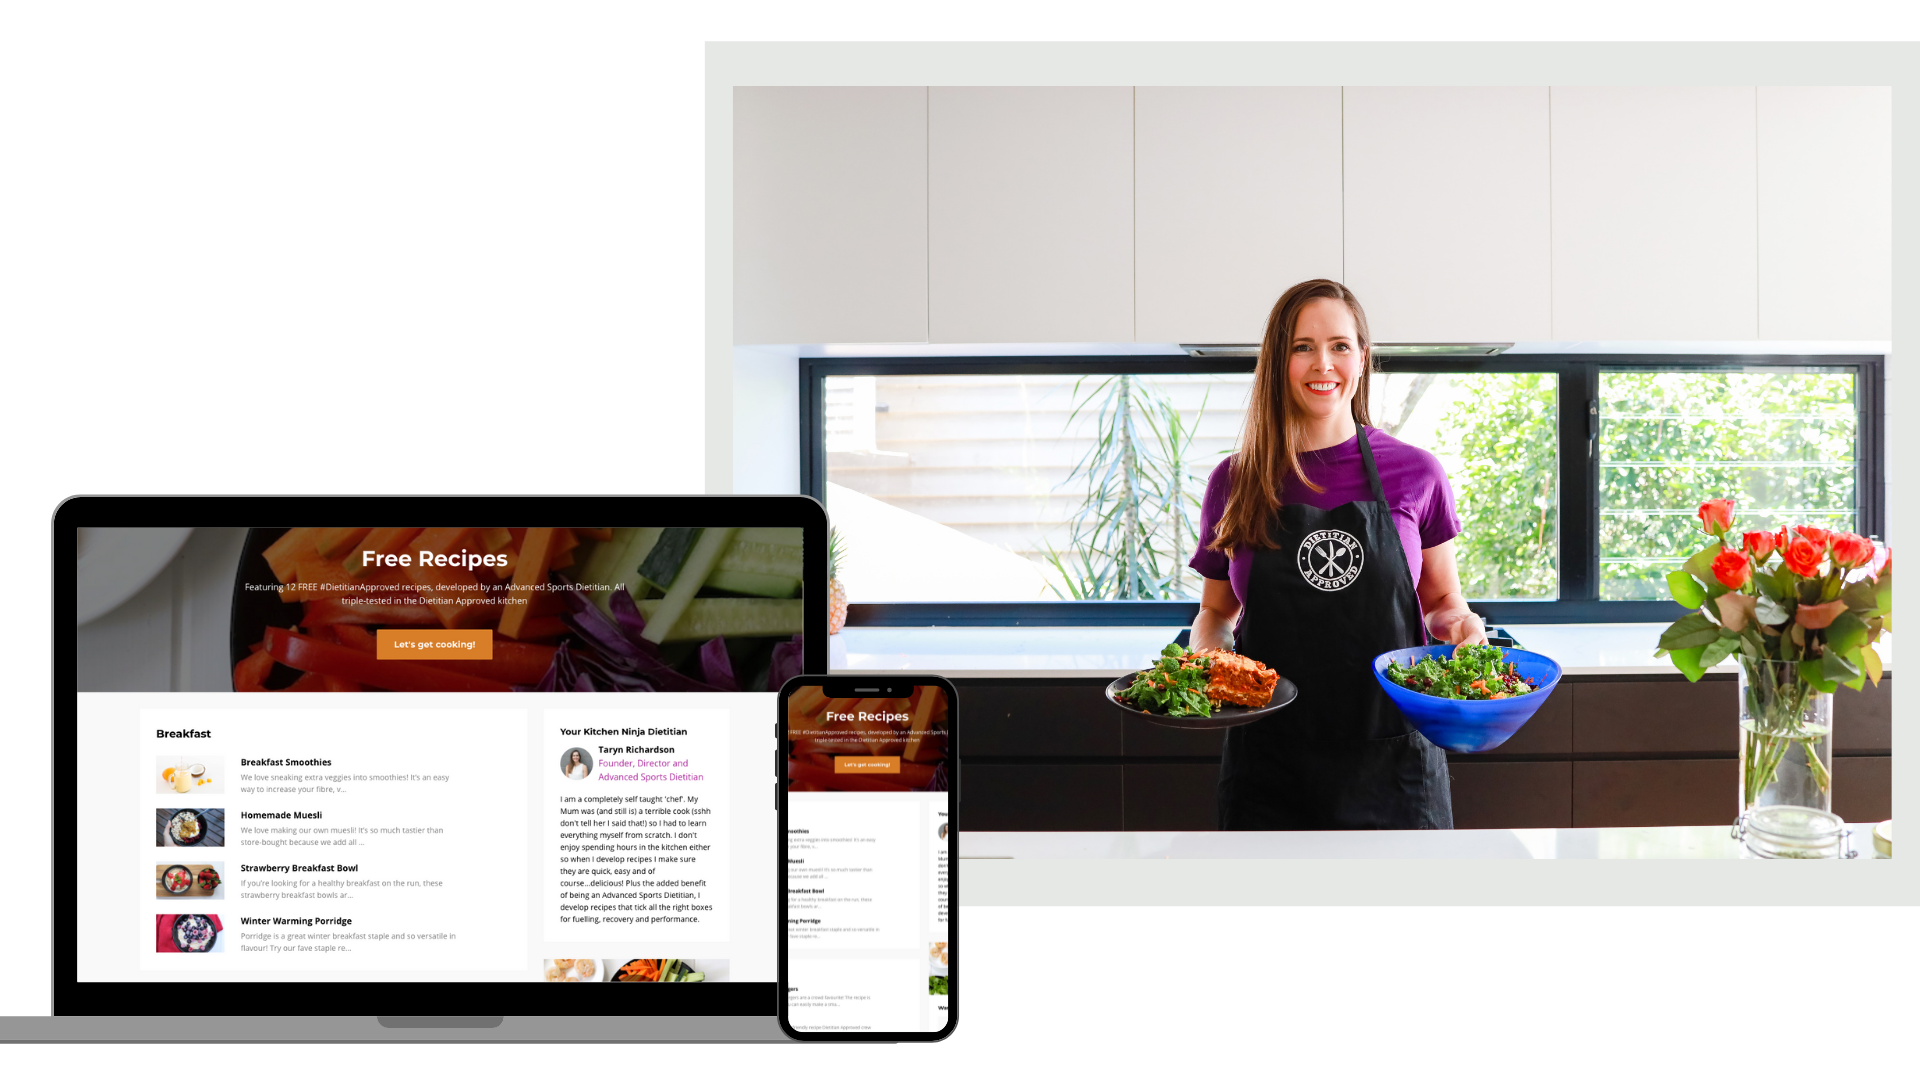 Free Dietitian Approved Recipes